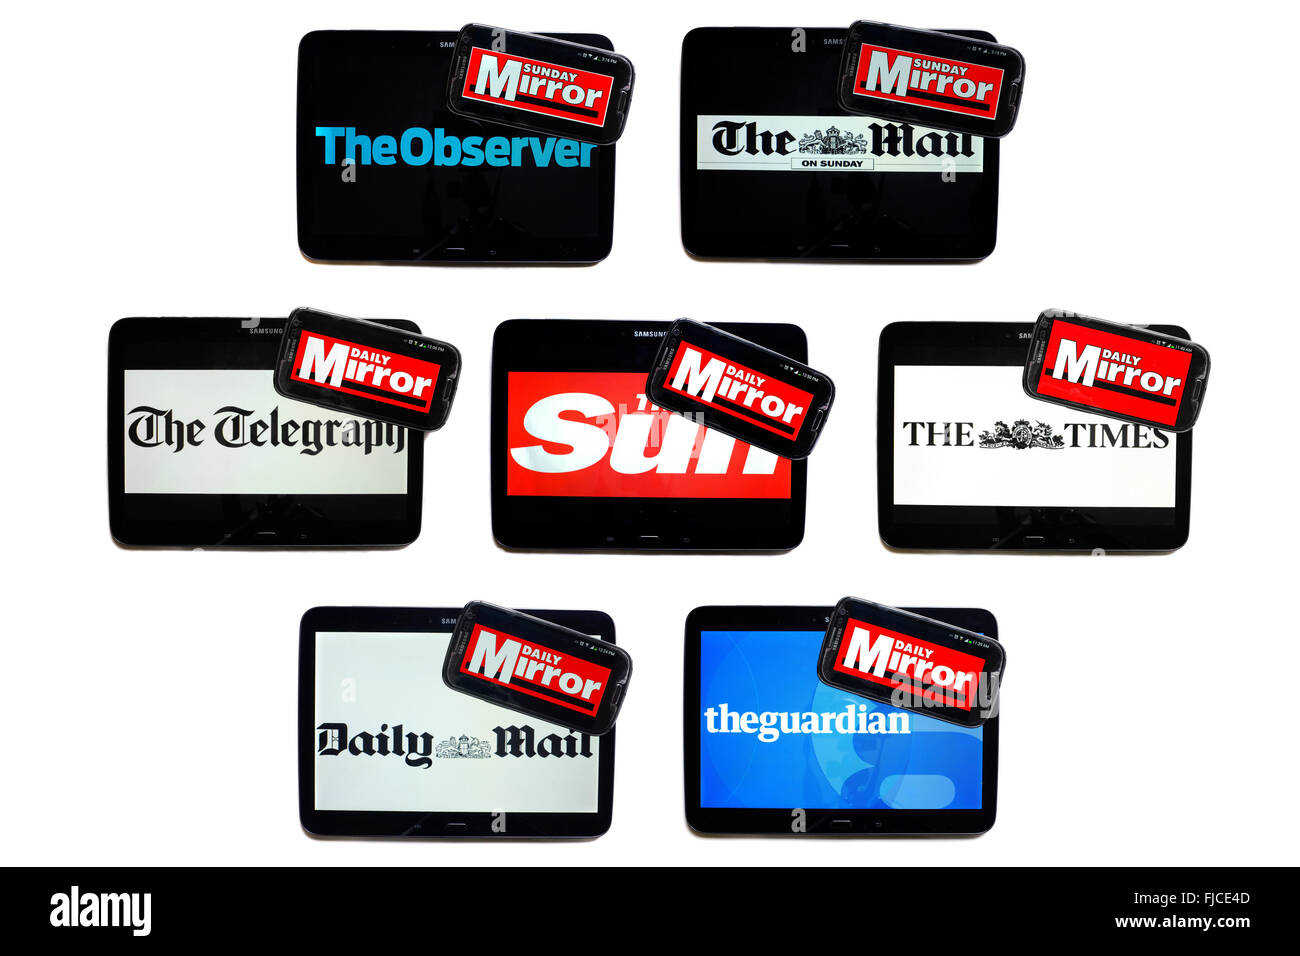 the daily mirror newspaper logo on smartphone screens surrounded by